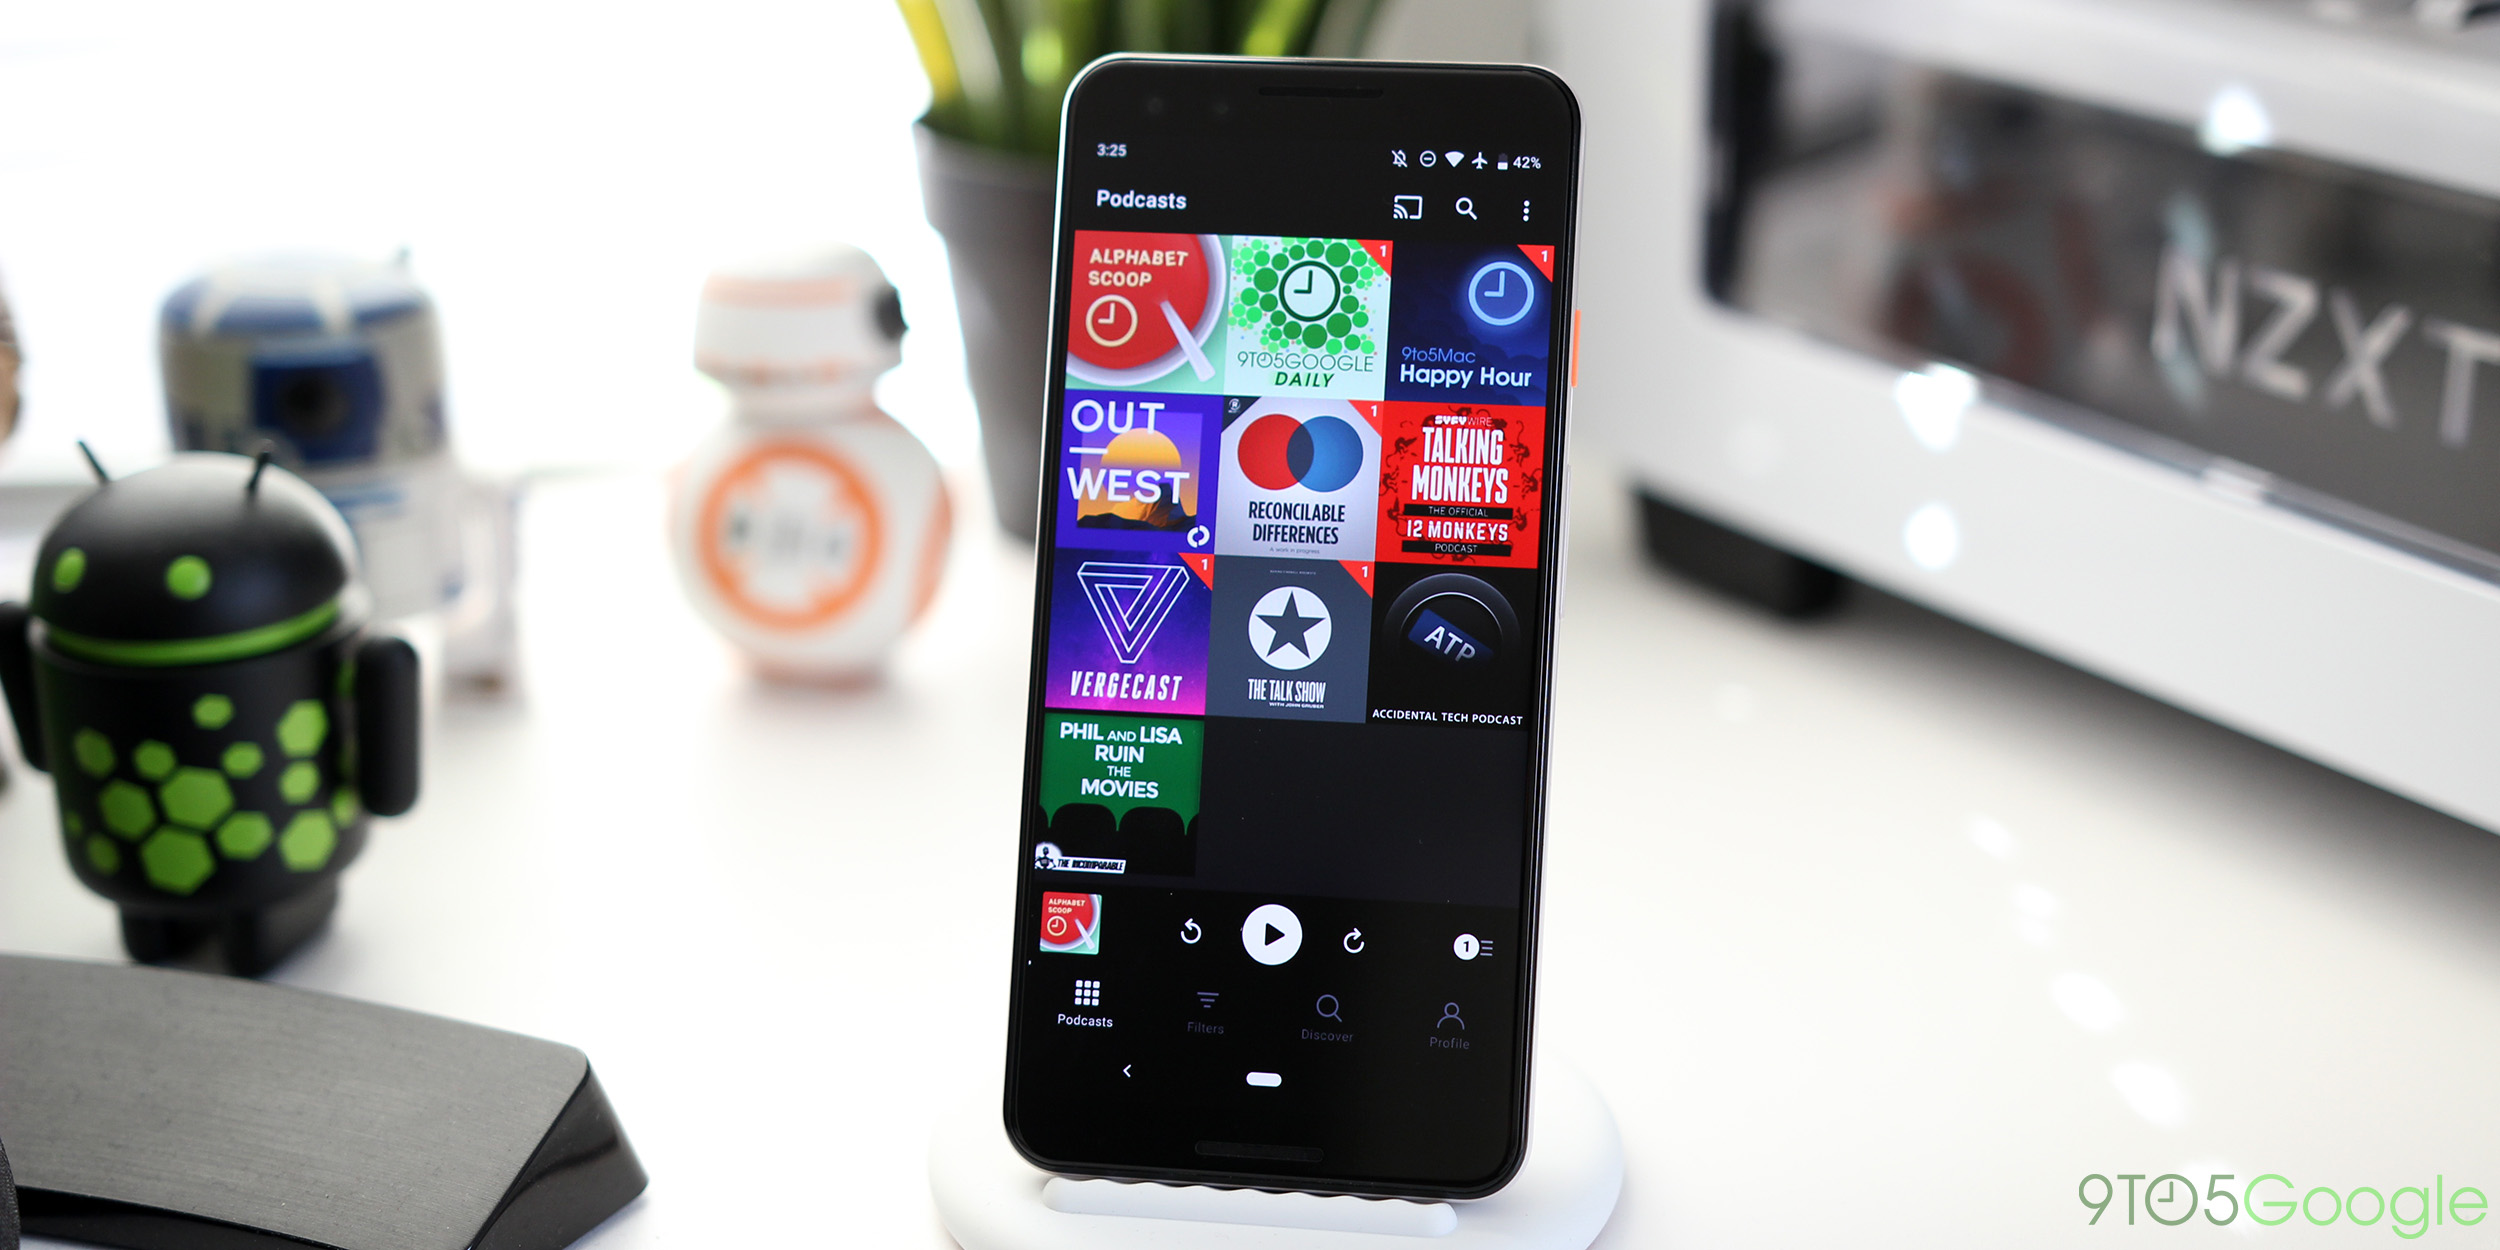 Pocket Casts is up for sale nearly three years after acquisition by public radio consortium